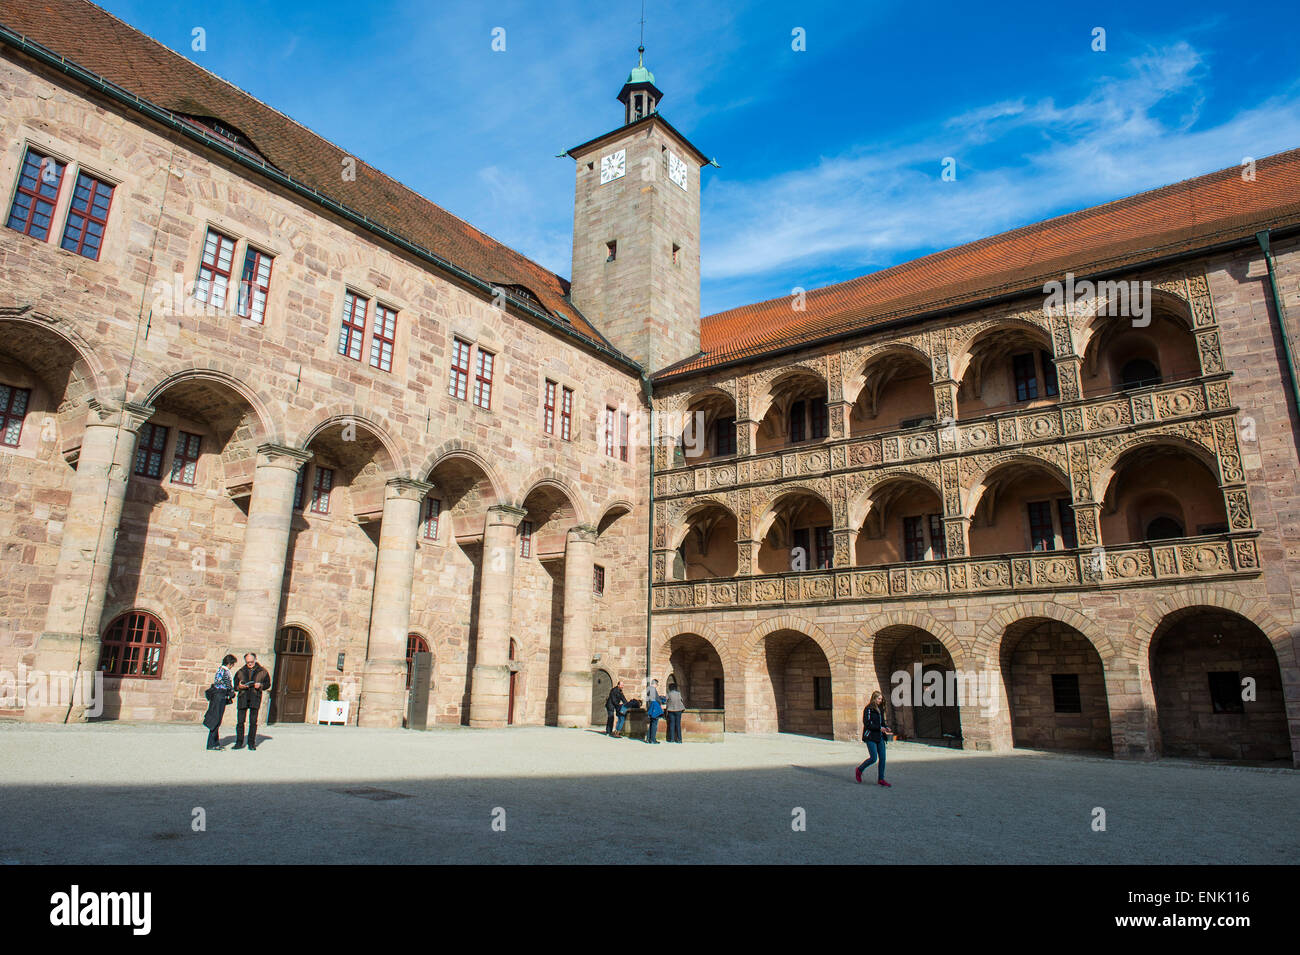 Renaissance inner court of the Plassenburg Castle, Kulmbach, Upper Franconia, Bavaria, Germany, Europe - Stock Image